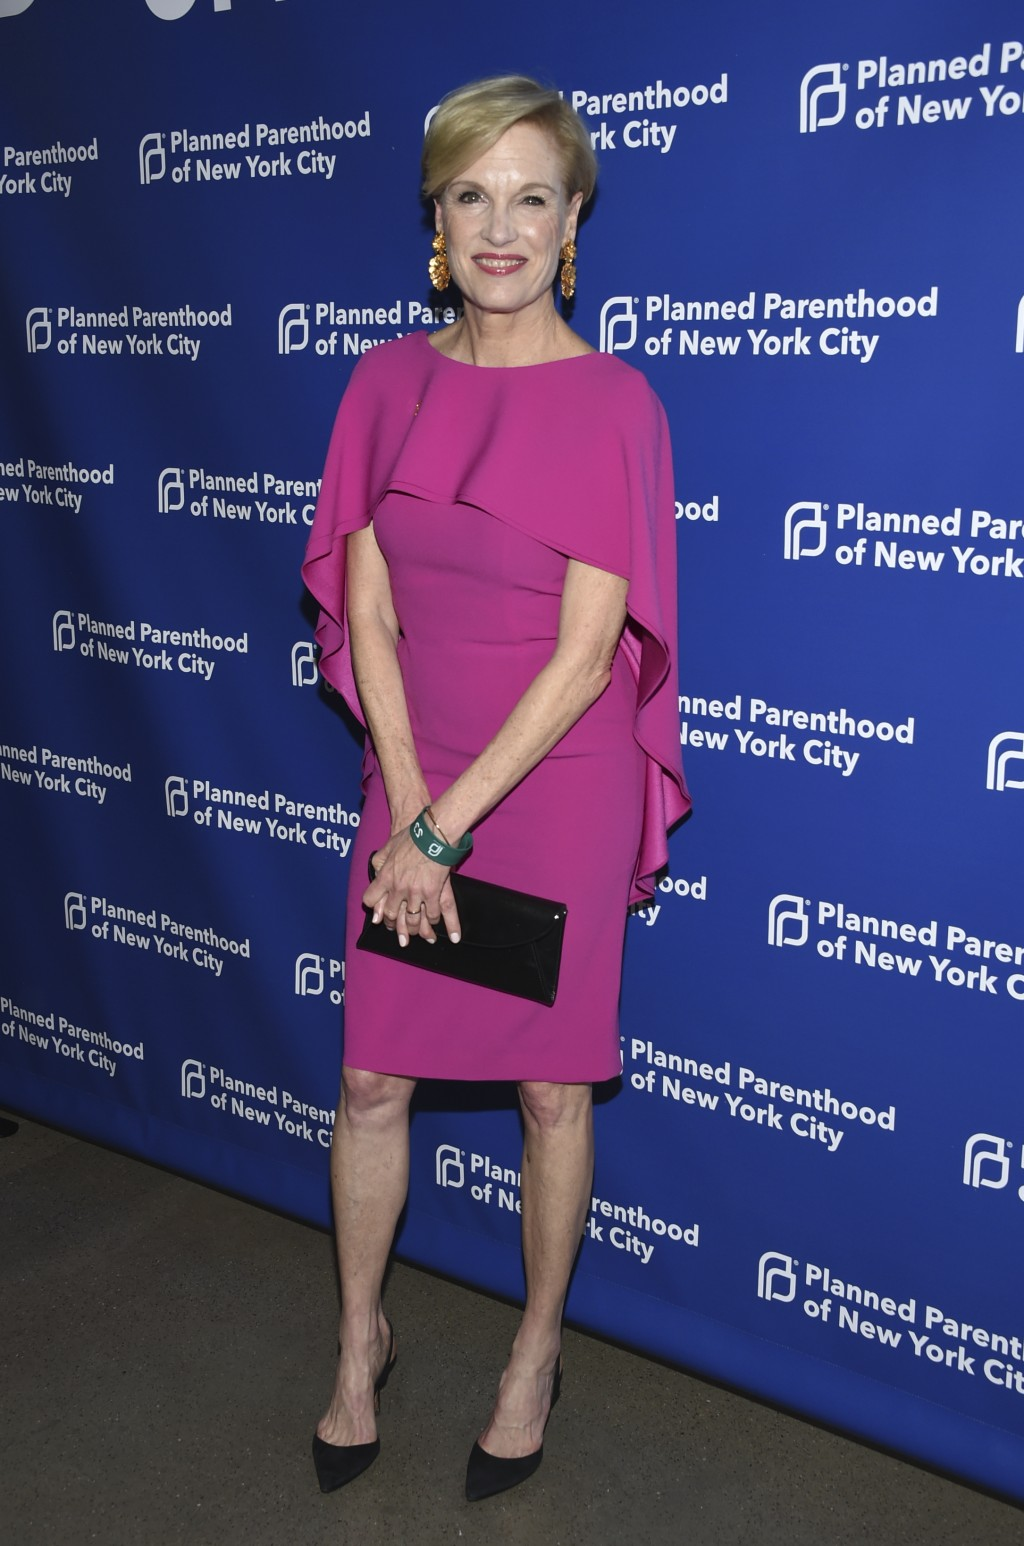 Honoree Cecile Richards attends the Planned Parenthood Benefit Gala at Spring Studios on Tuesday, May 1, 2018, in New York. (Photo by Evan Agostini/In...